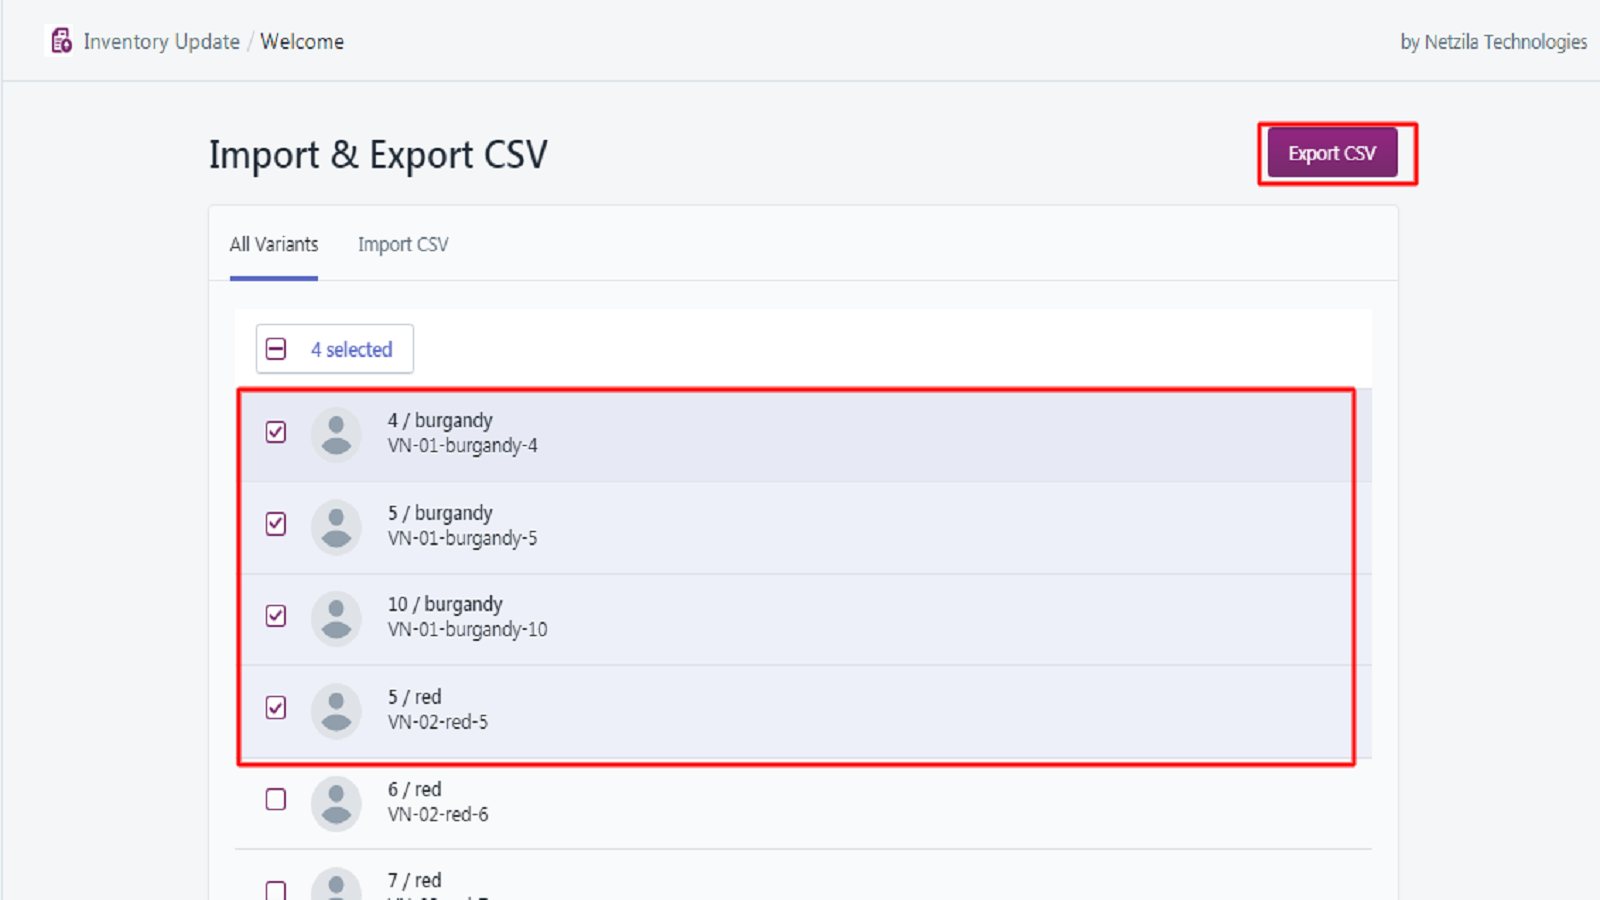 Select variants and export CSV.